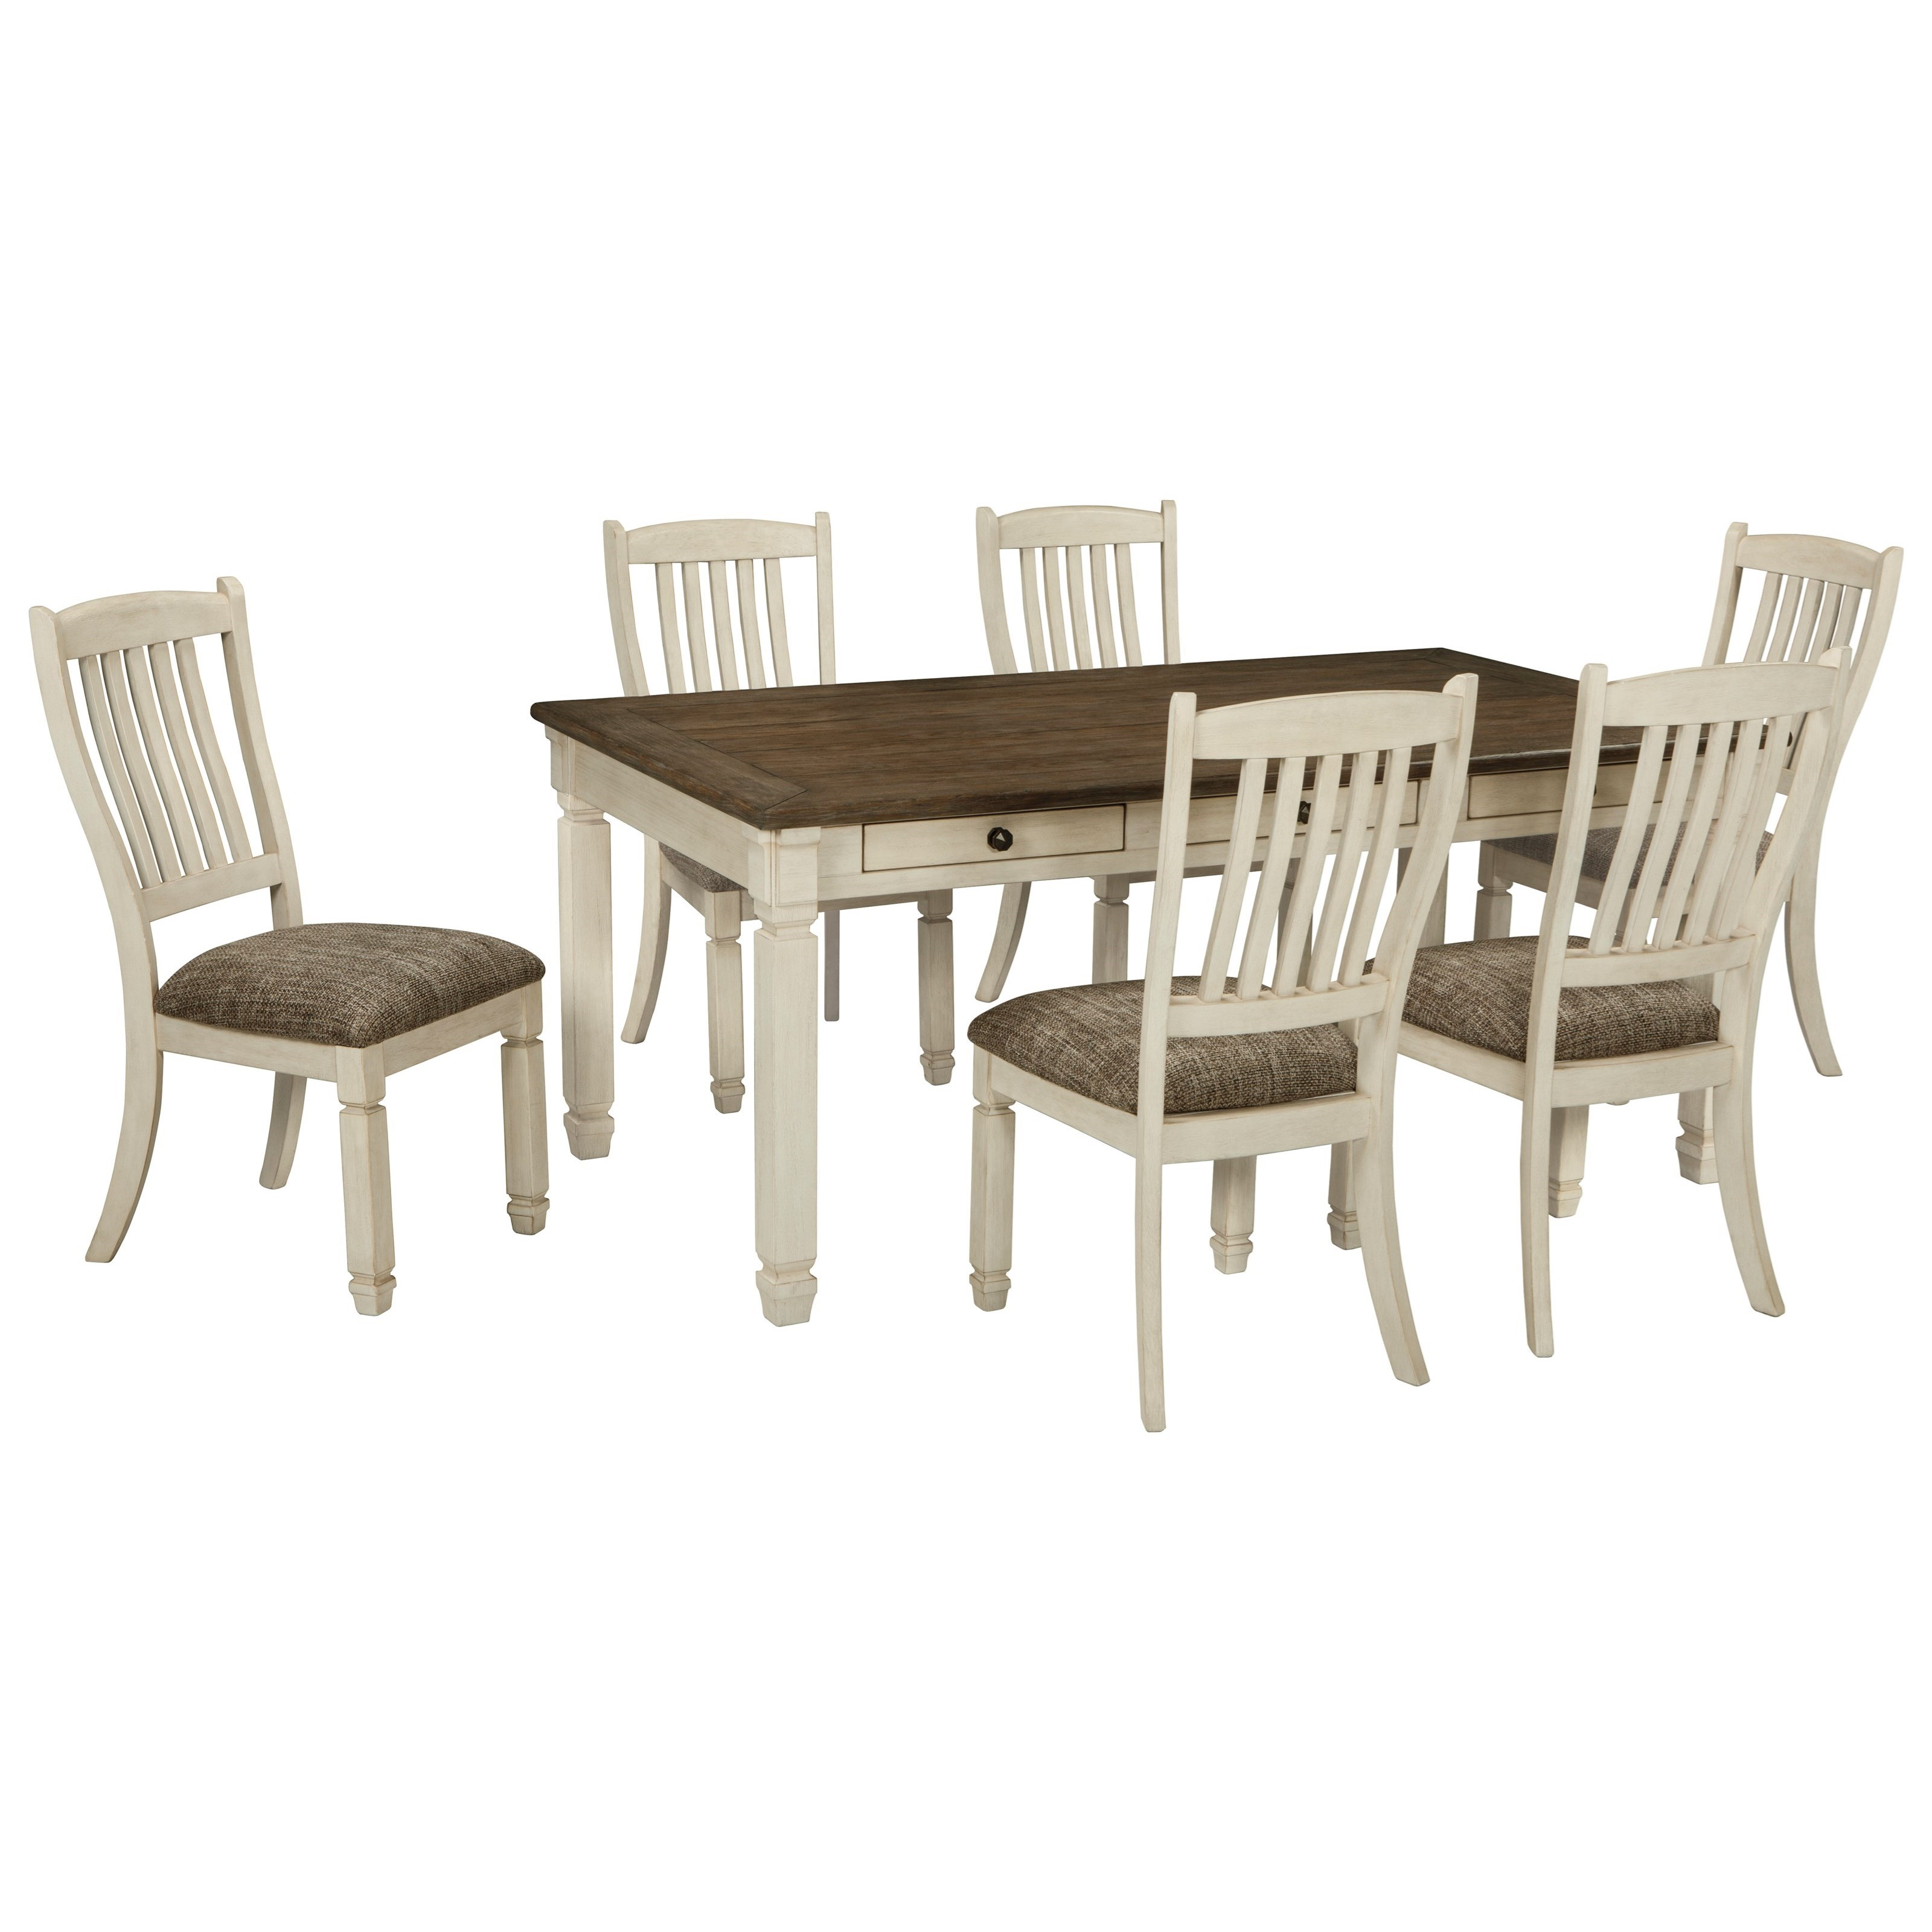 Bolanburg 7-Piece Table and Chair Set by Signature Design by Ashley at Godby Home Furnishings